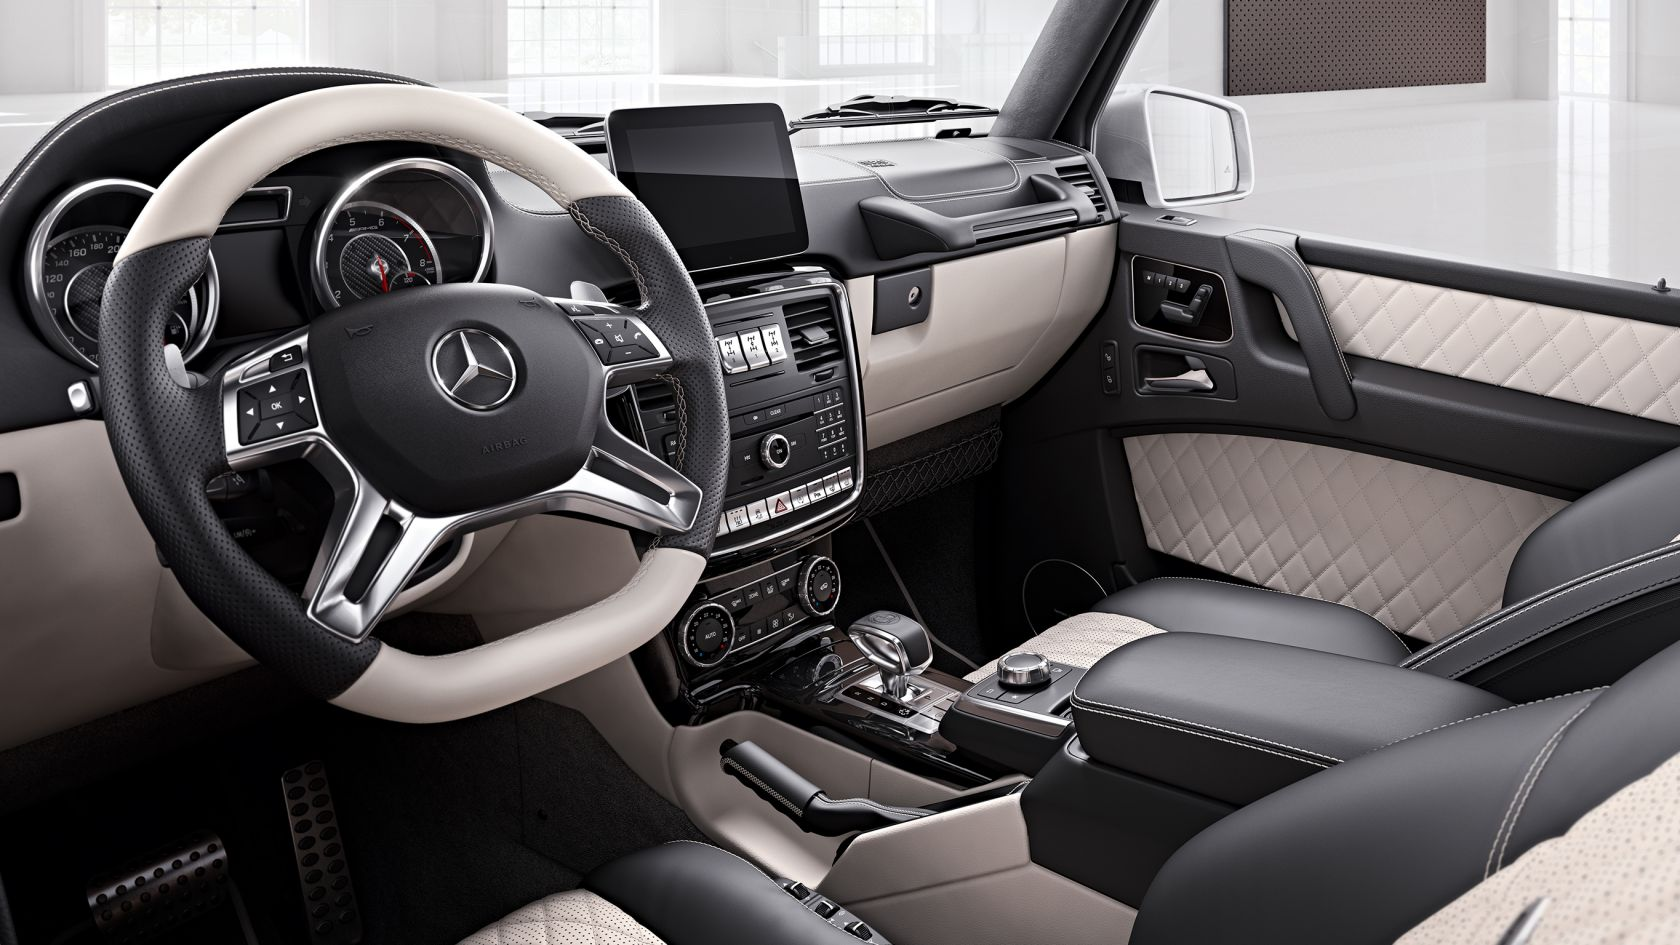 Mercedes-Benz Clase G Concesur Mercedes-Benz